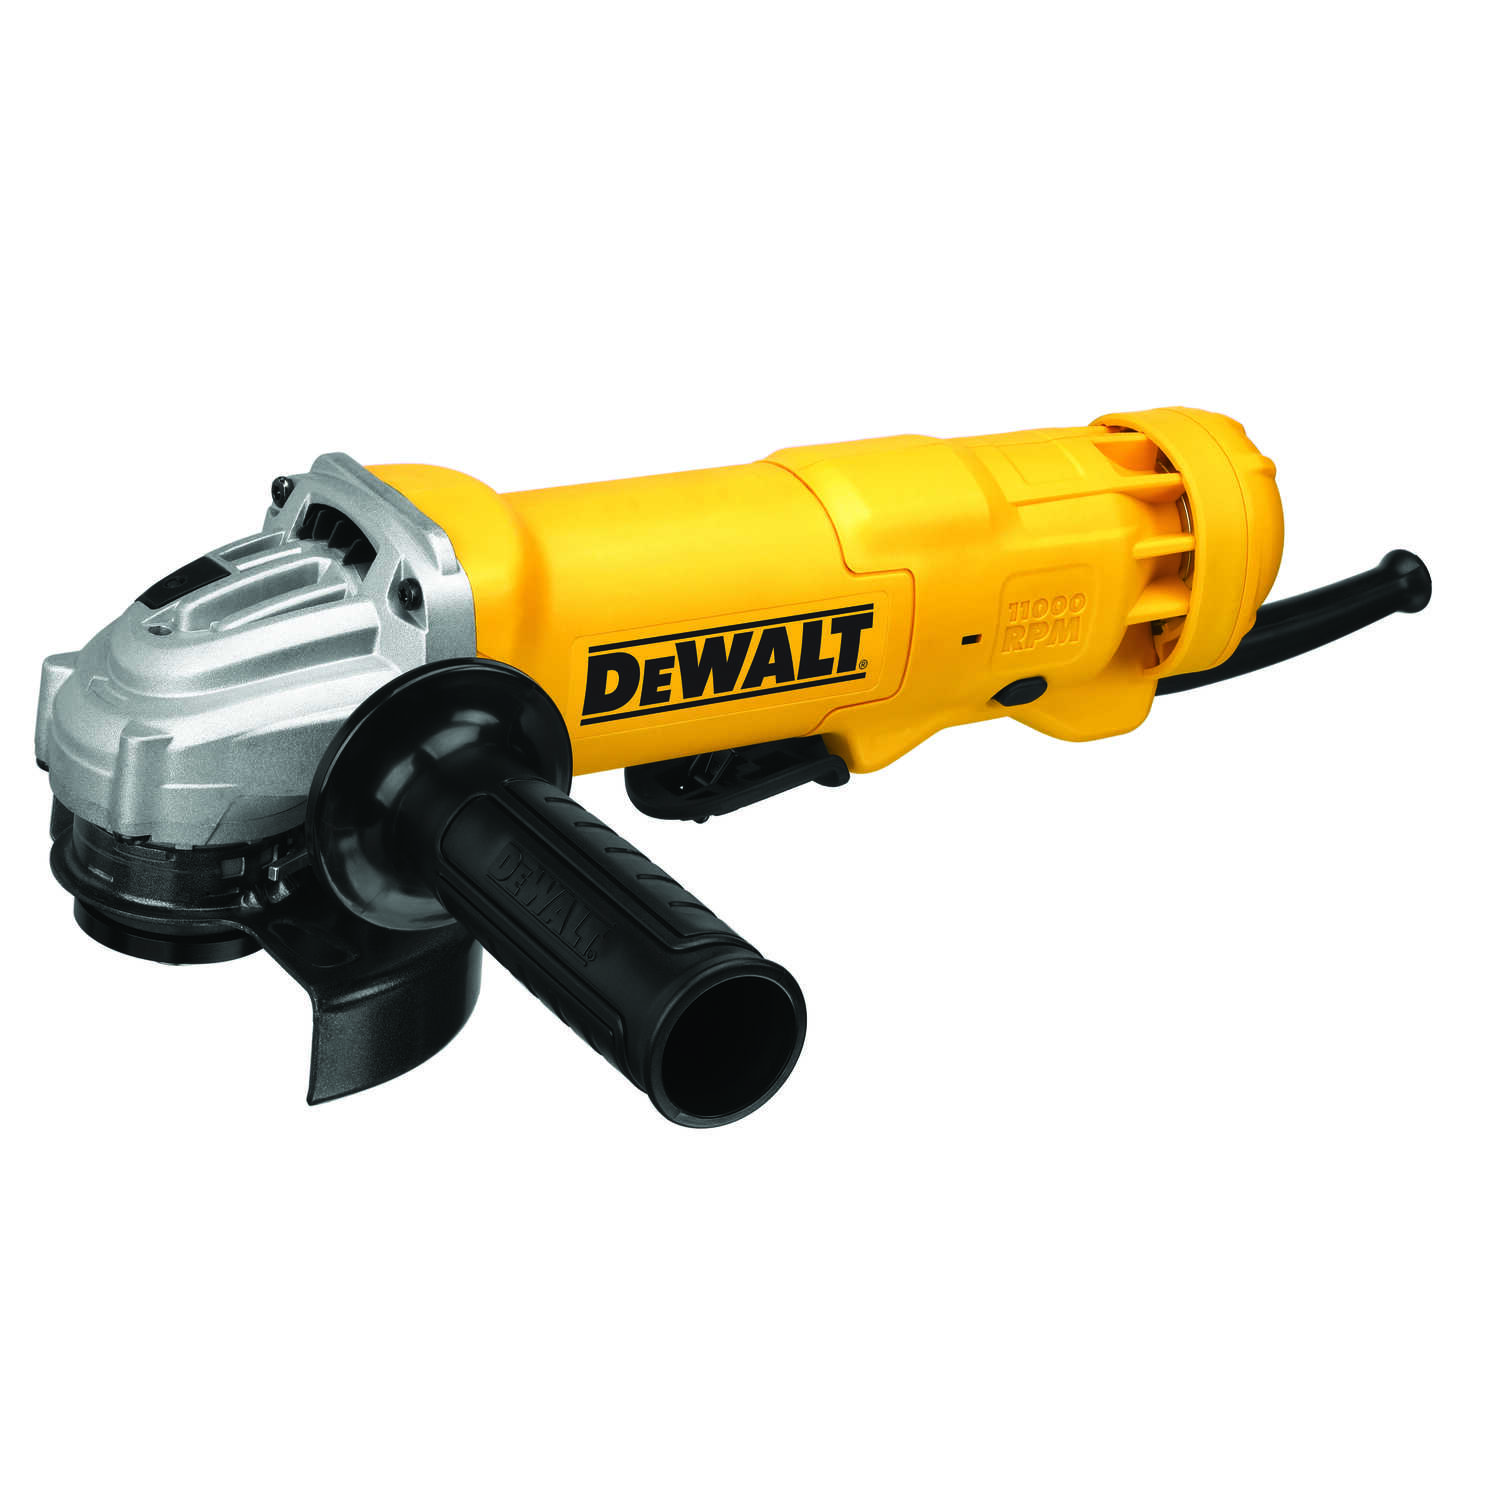 DeWalt  11 amps Corded  Small  Angle Grinder  11000 rpm 4-1/2 in.